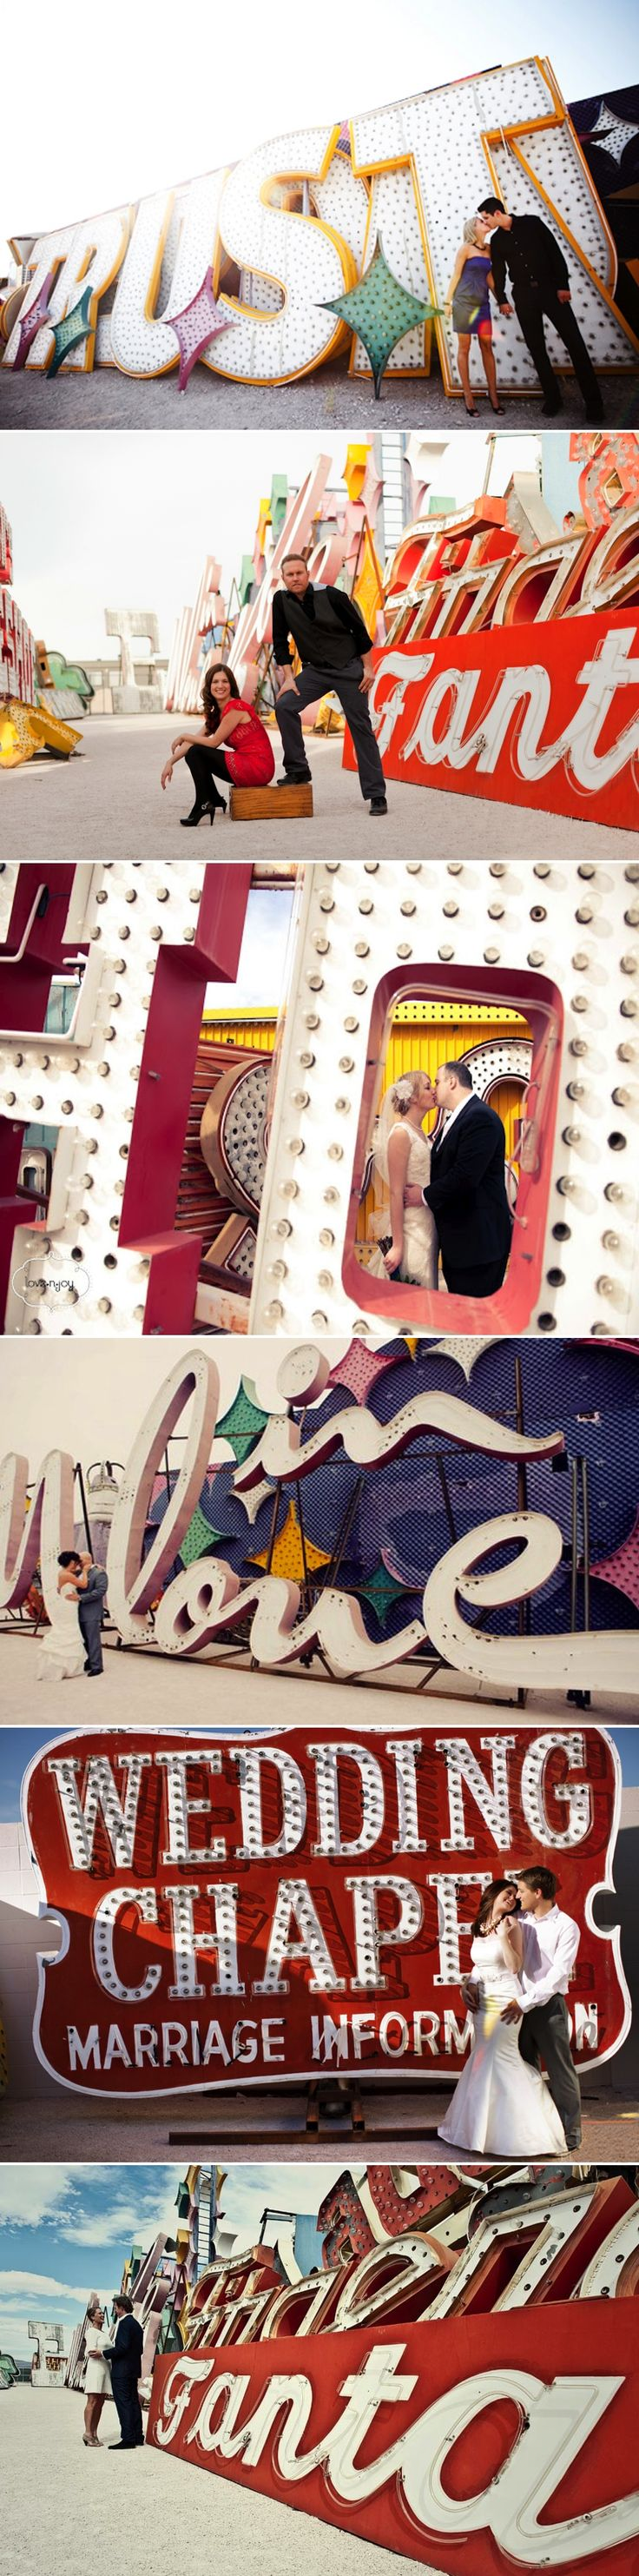 Las Vegas Neon Museum, USA. A very cool place to shoot. But it's very expensive…